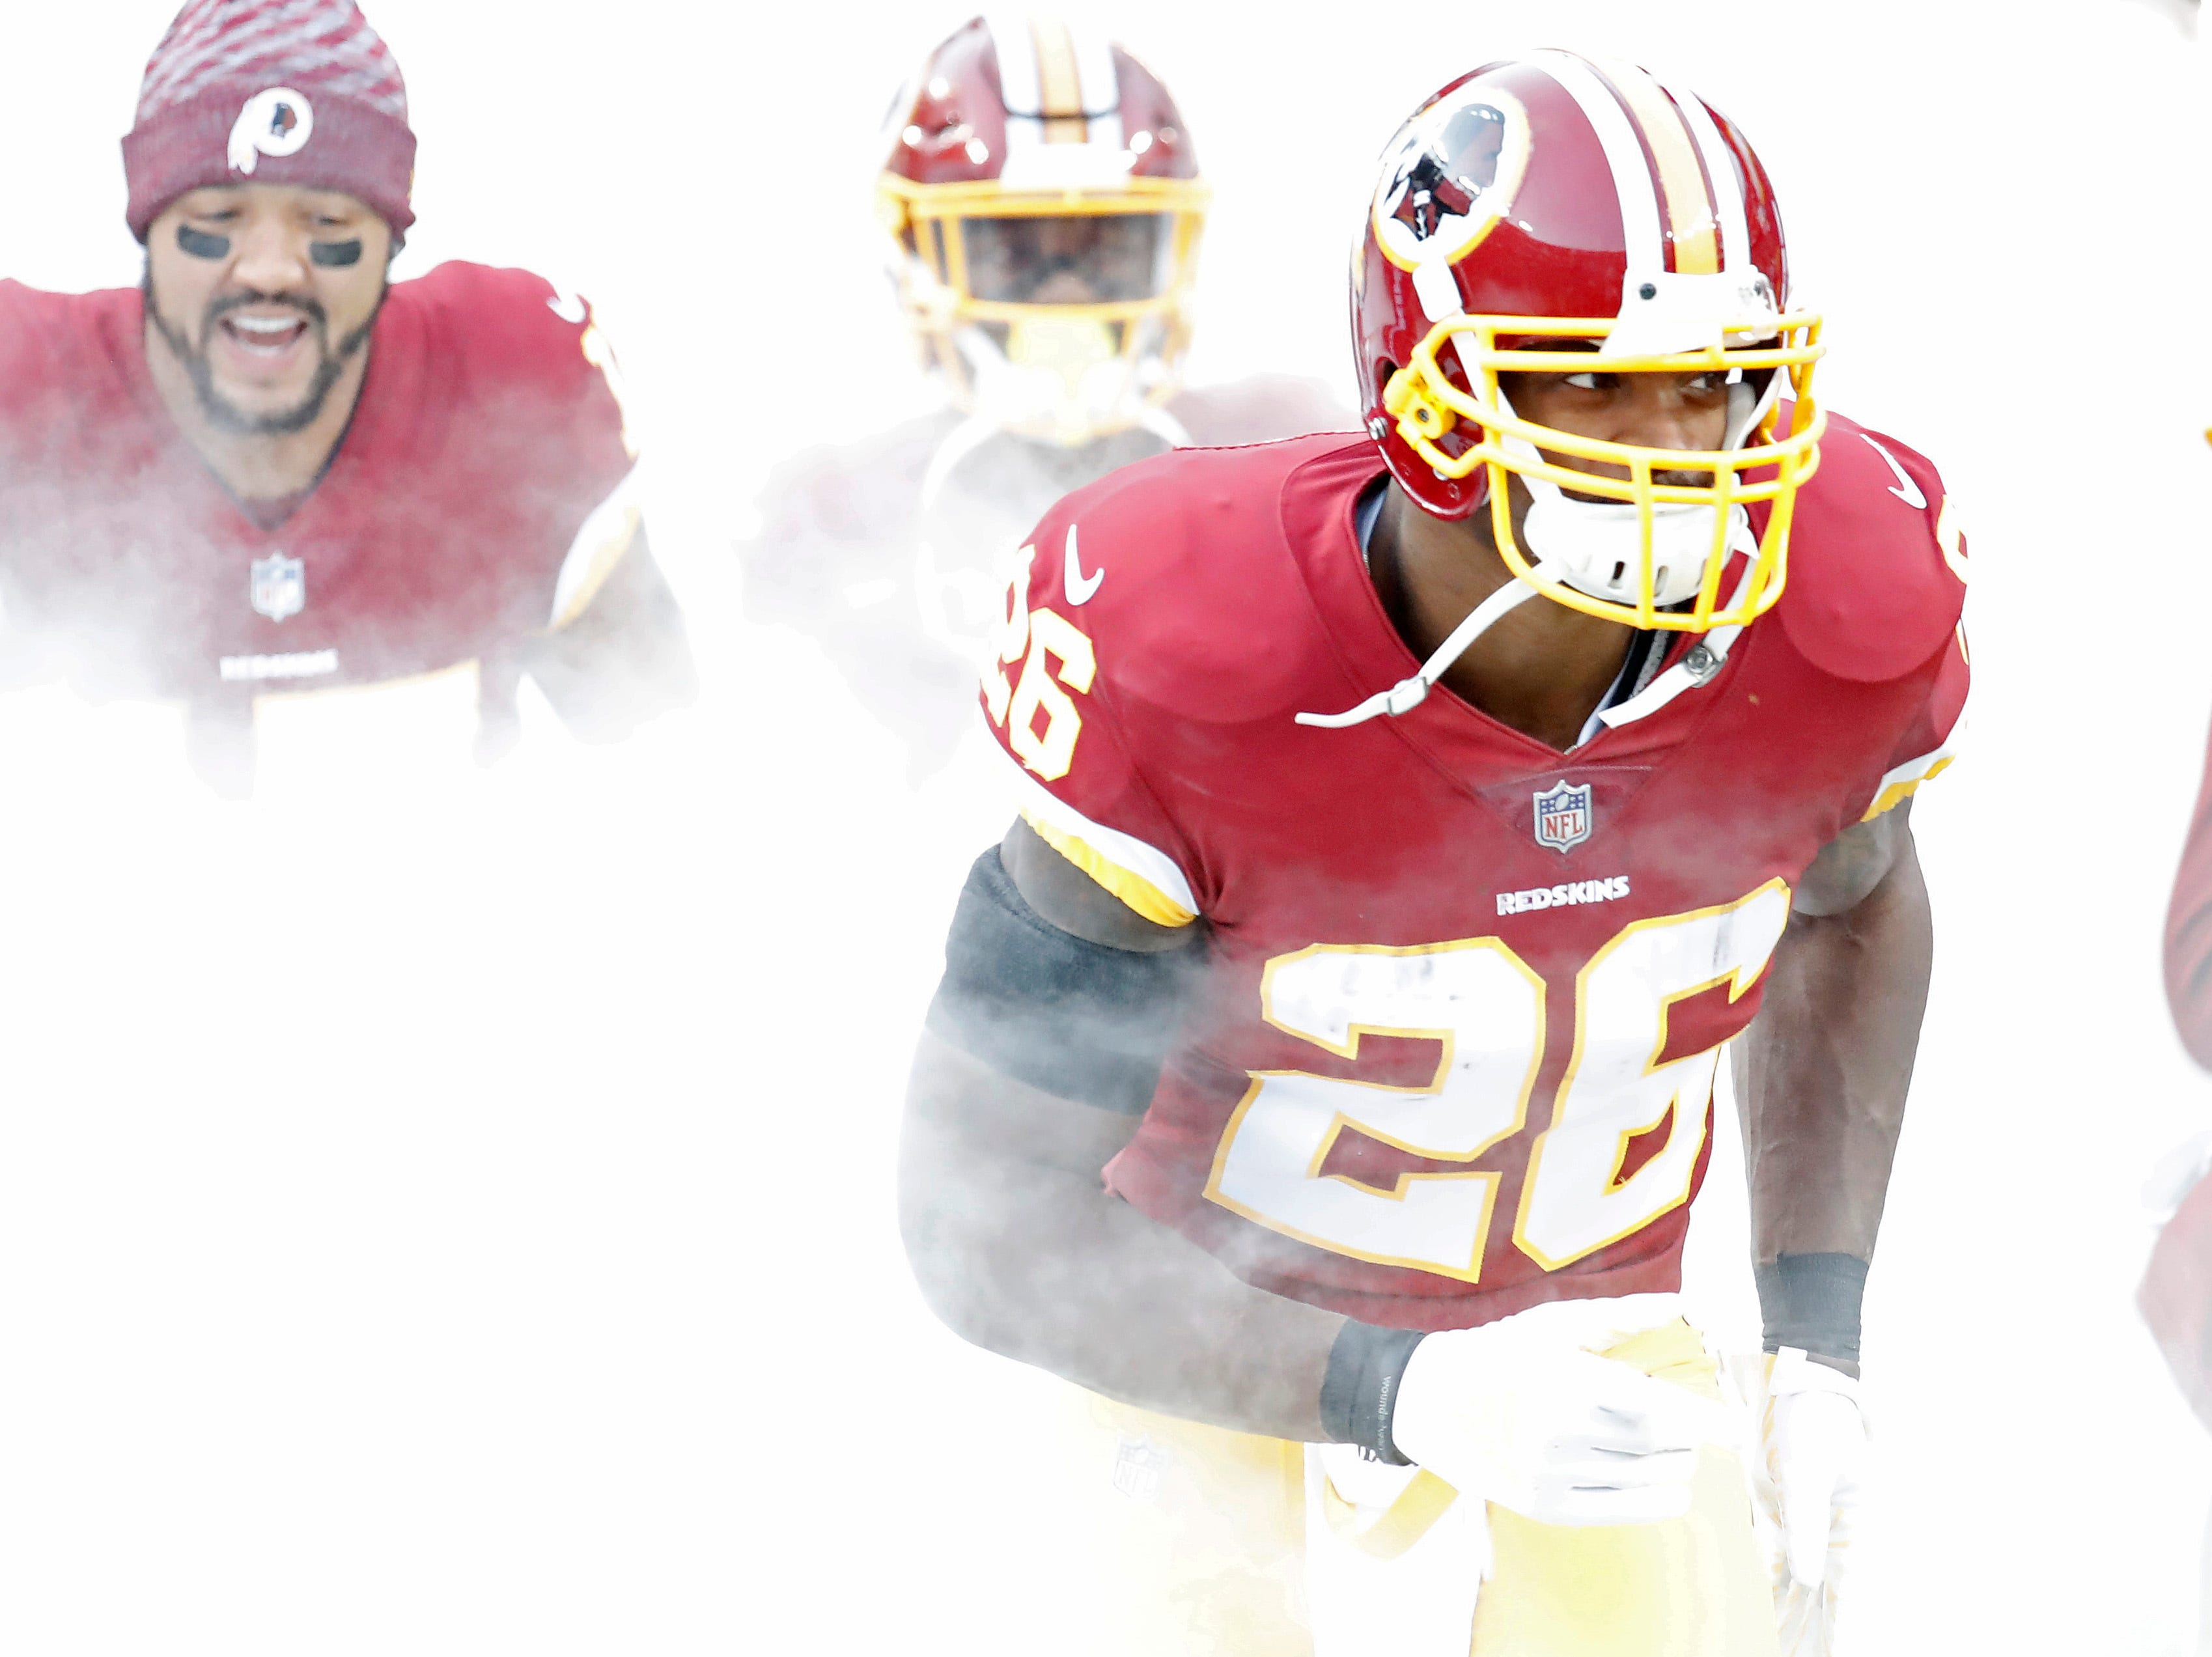 25. Adrian Peterson, RB, Redskins: Agreed to deal with Redskins